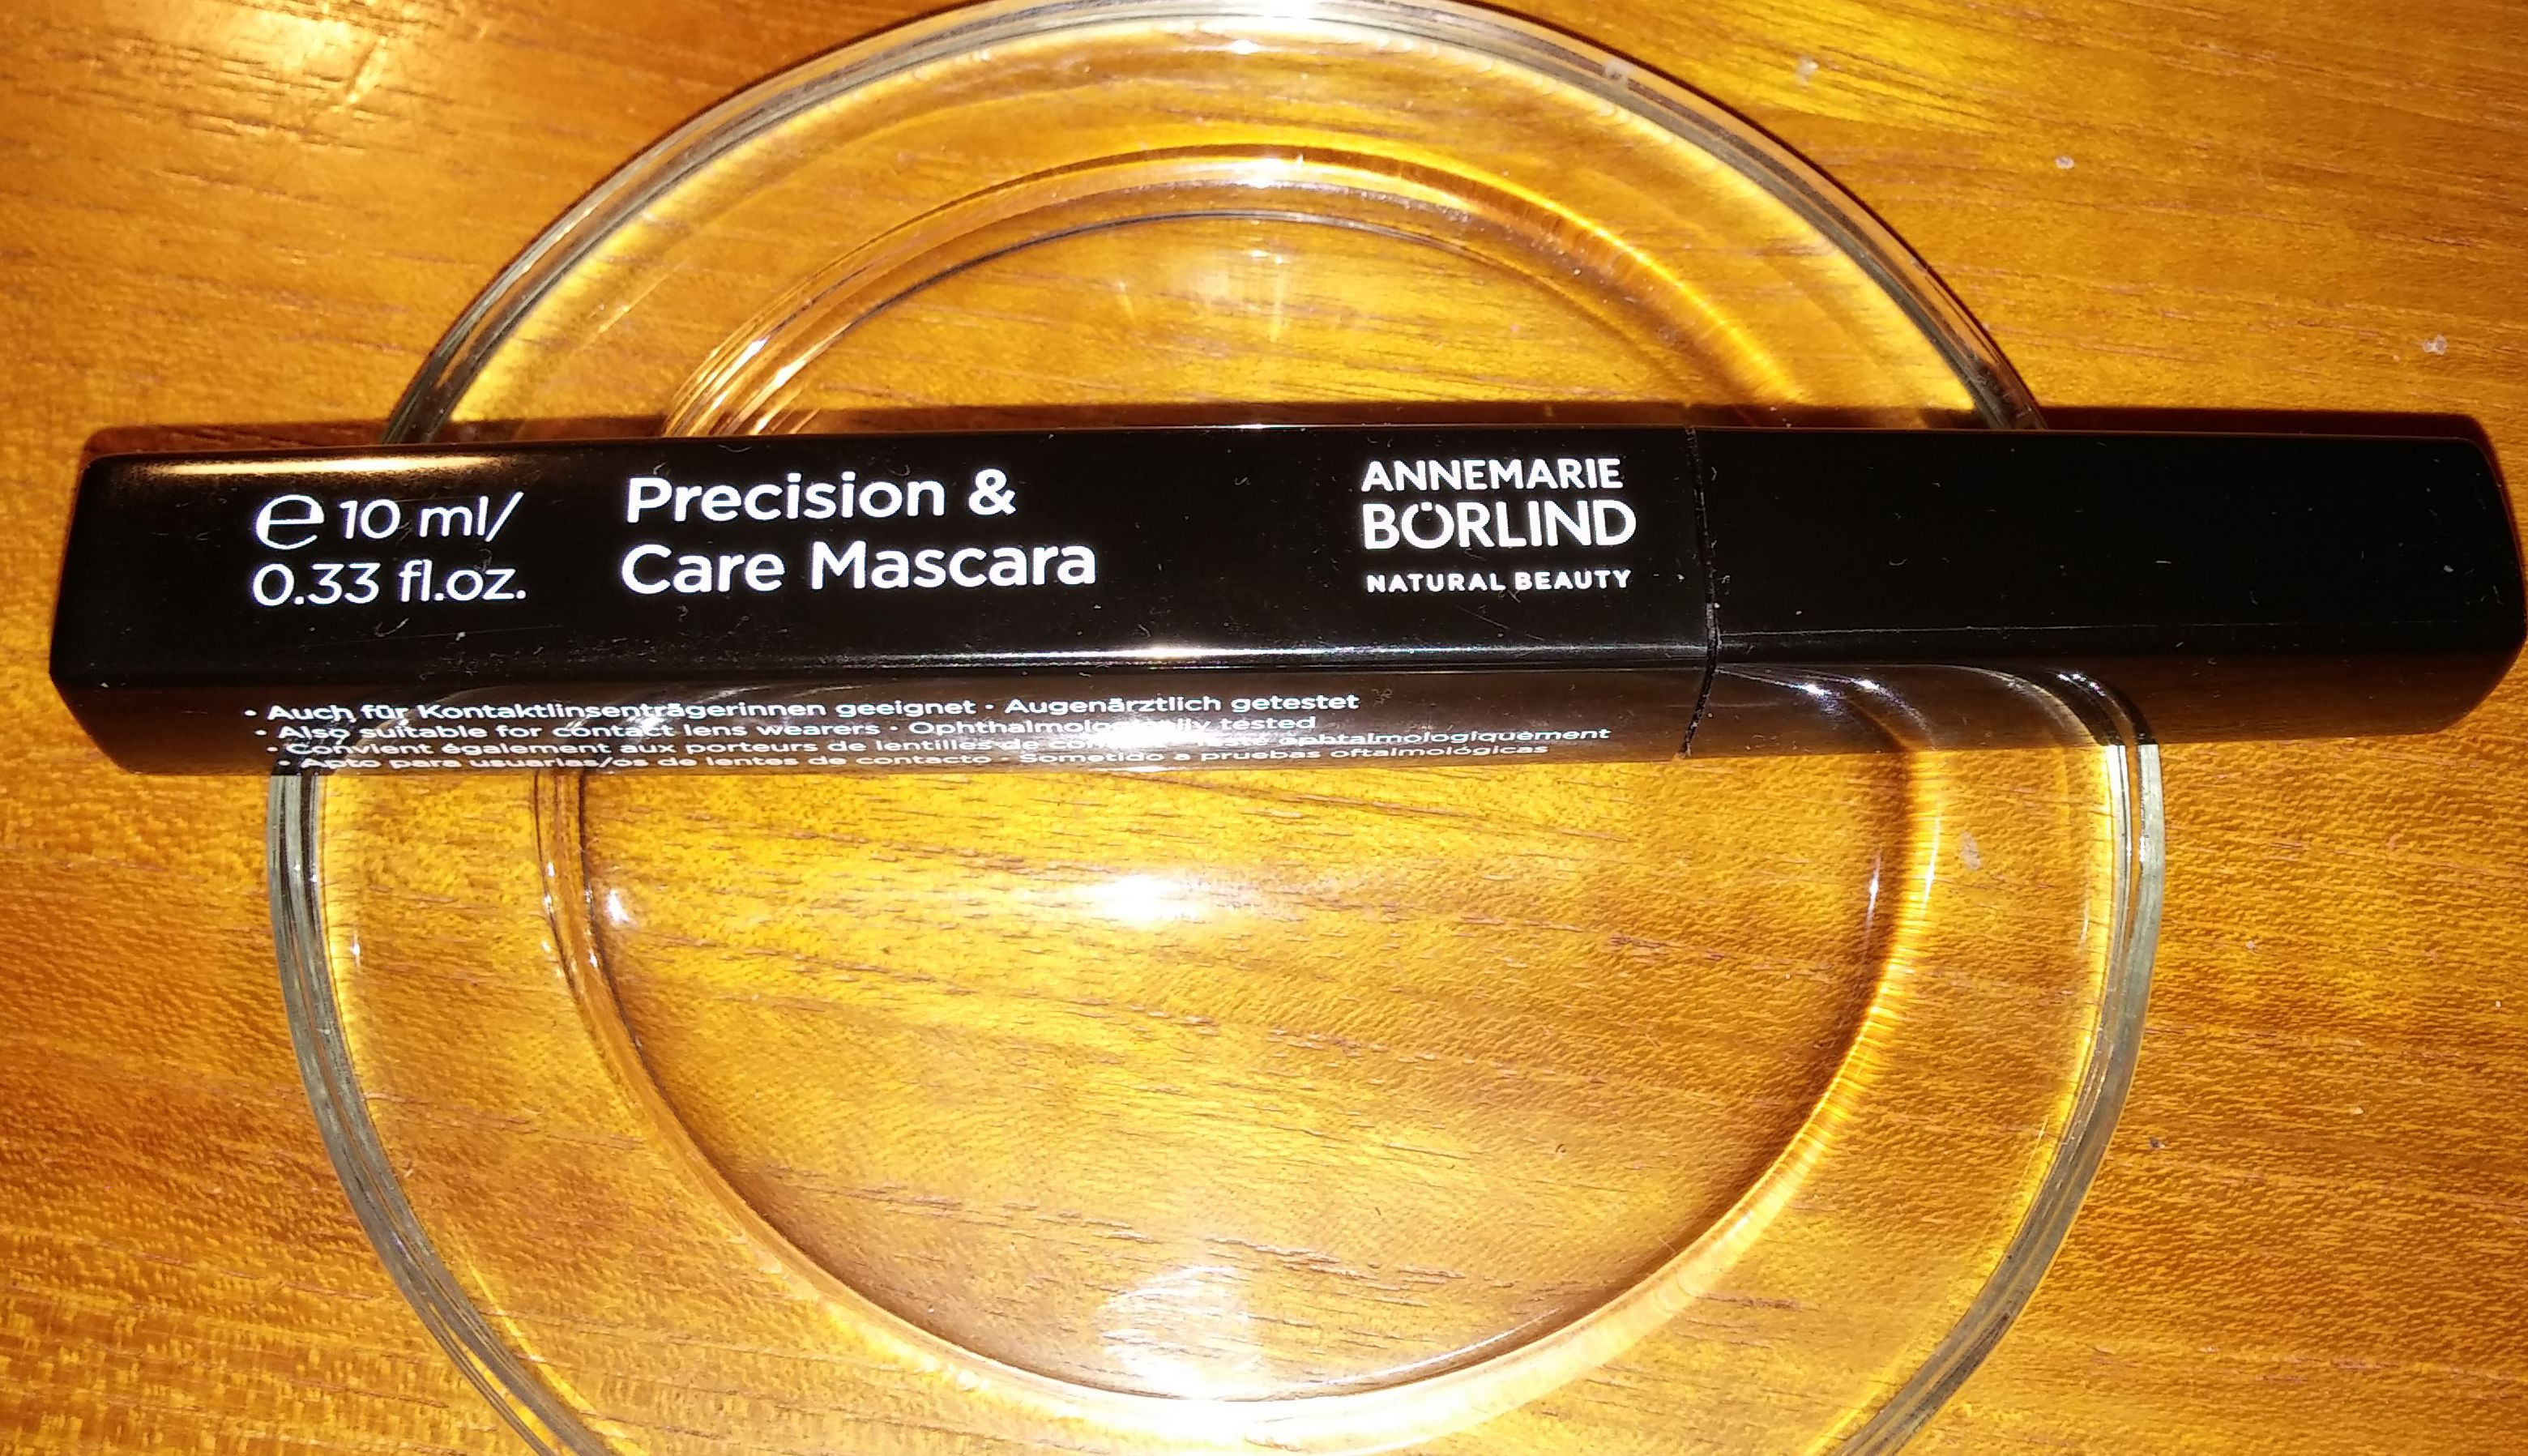 Precision and care mascara - recension